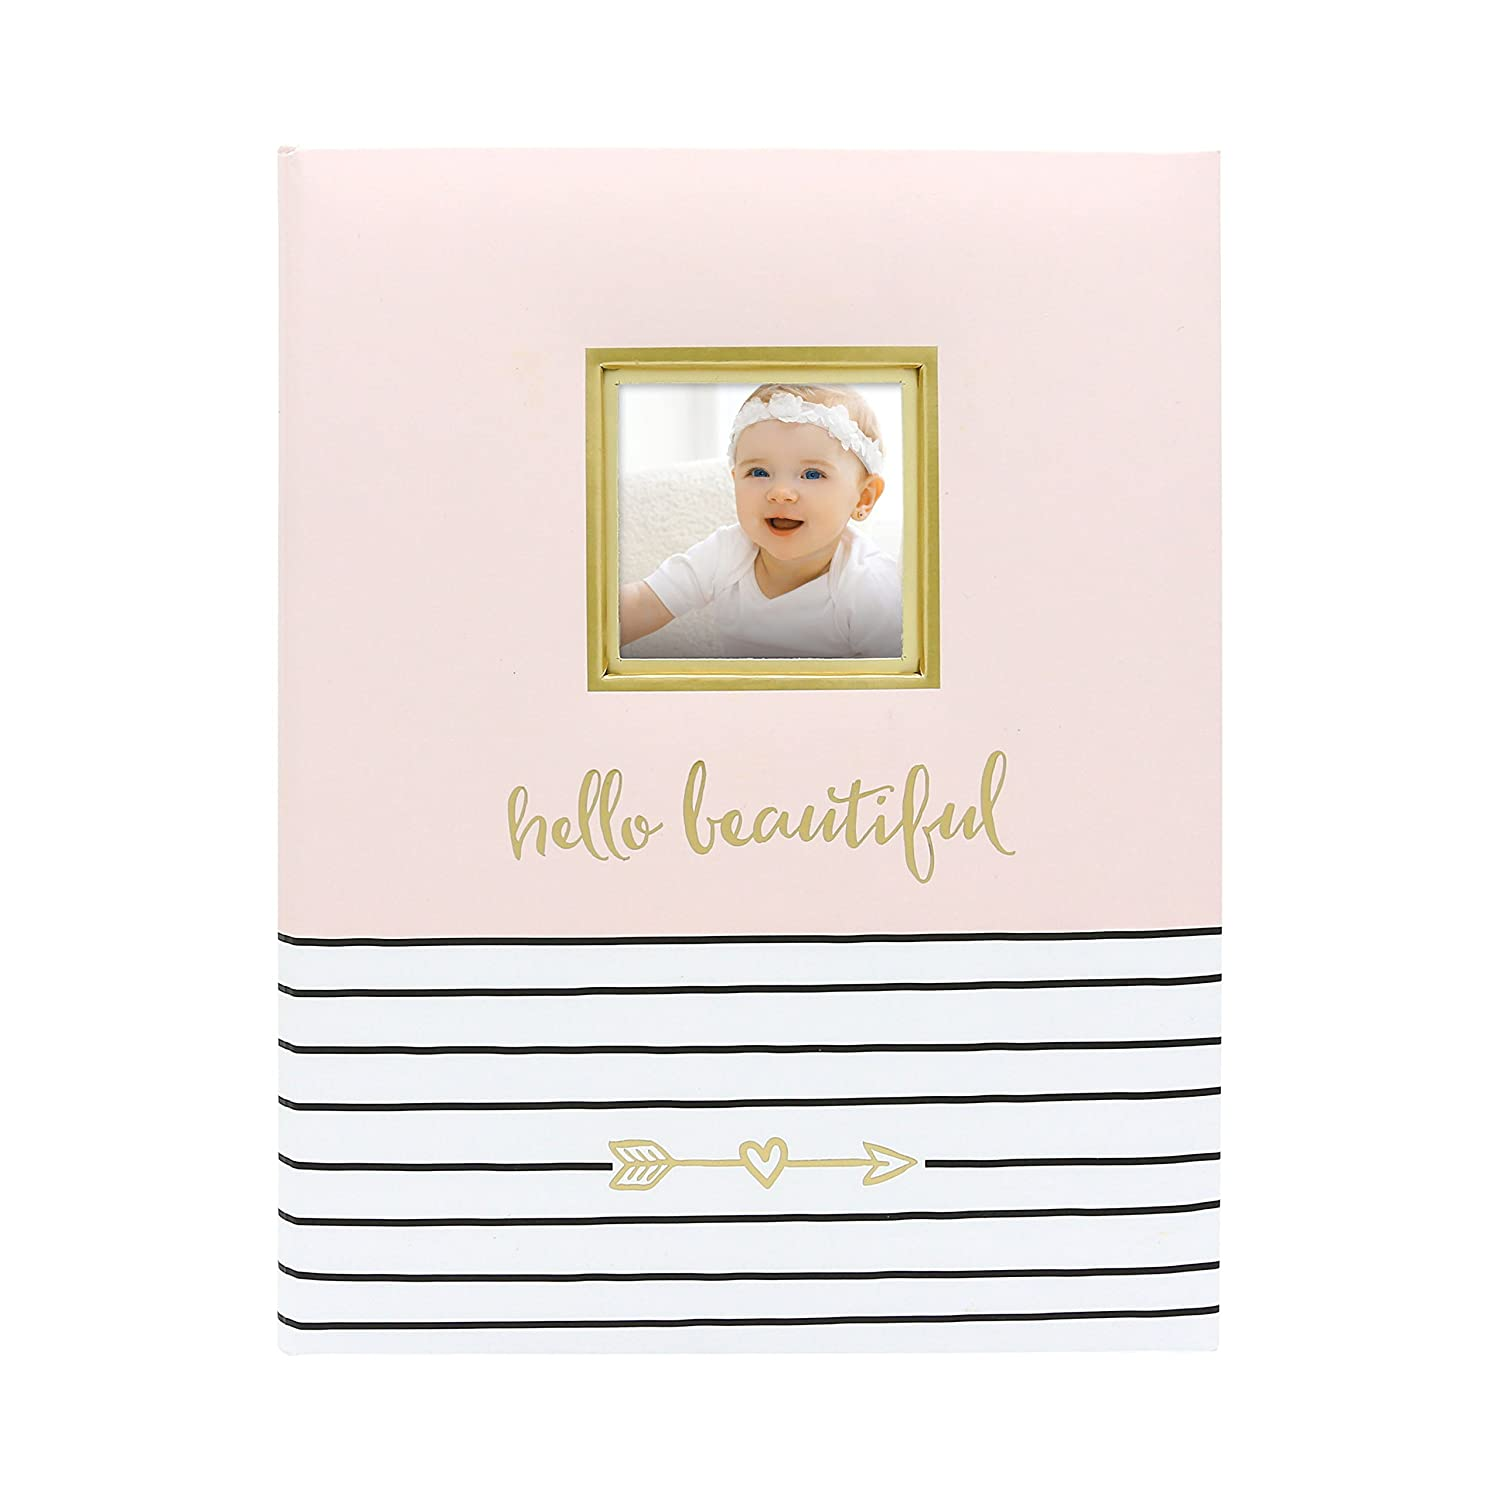 Memory book for baby girl